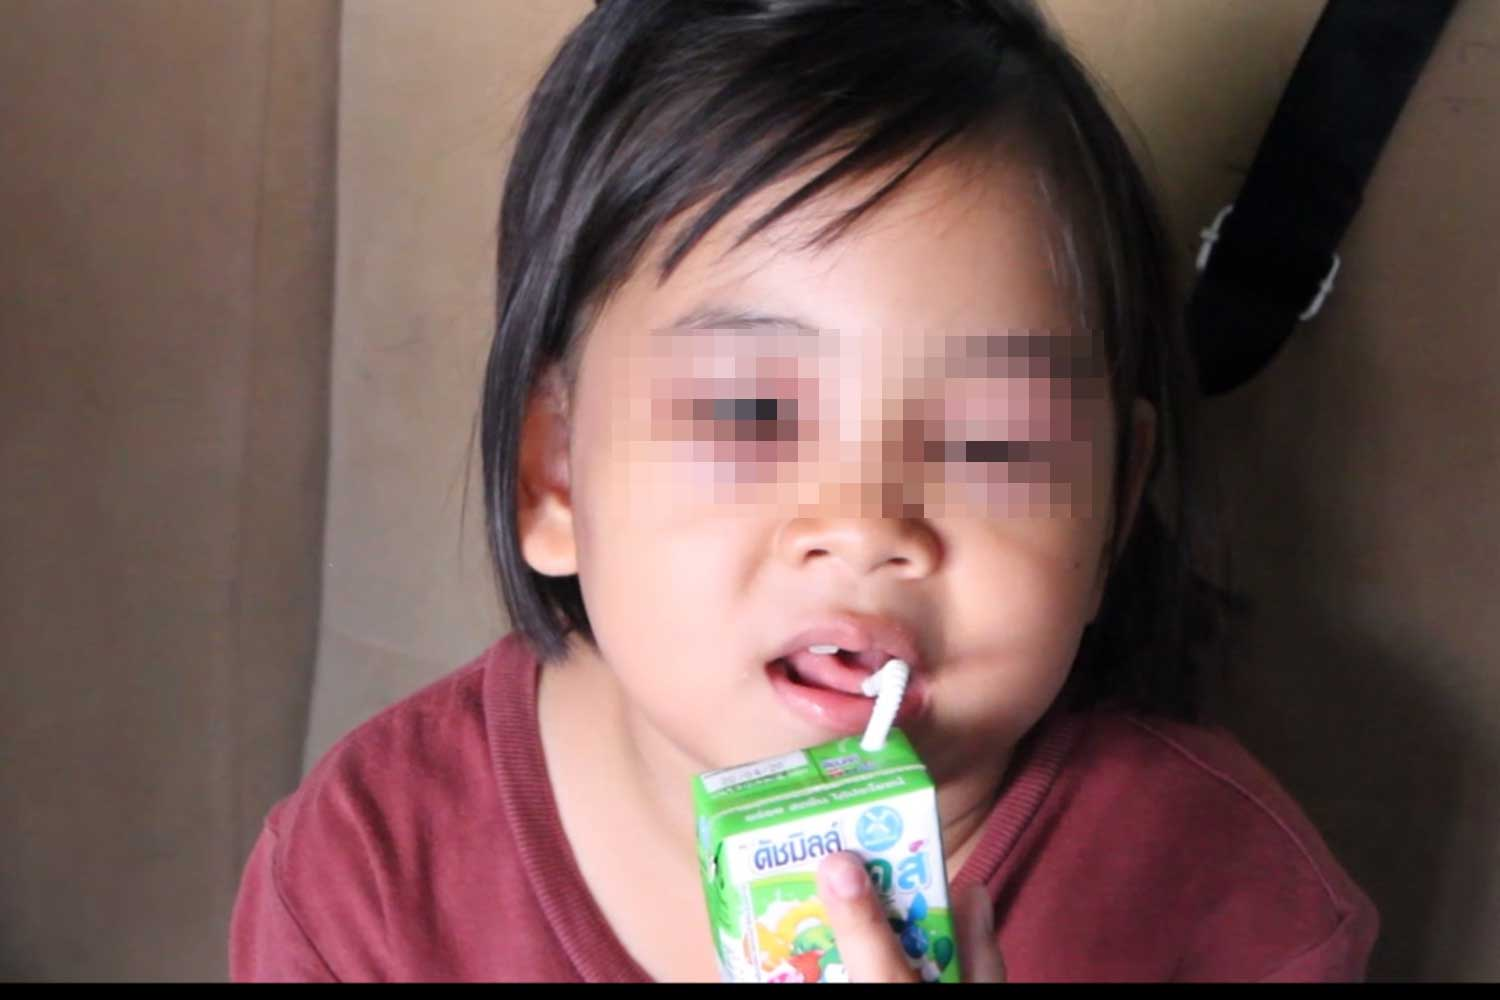 A Pattaya girl suffered facial swelling after being struck by her teacher for being too slow to answer questions, her mother says. (Photo by Chaiyot Pupattanapong)